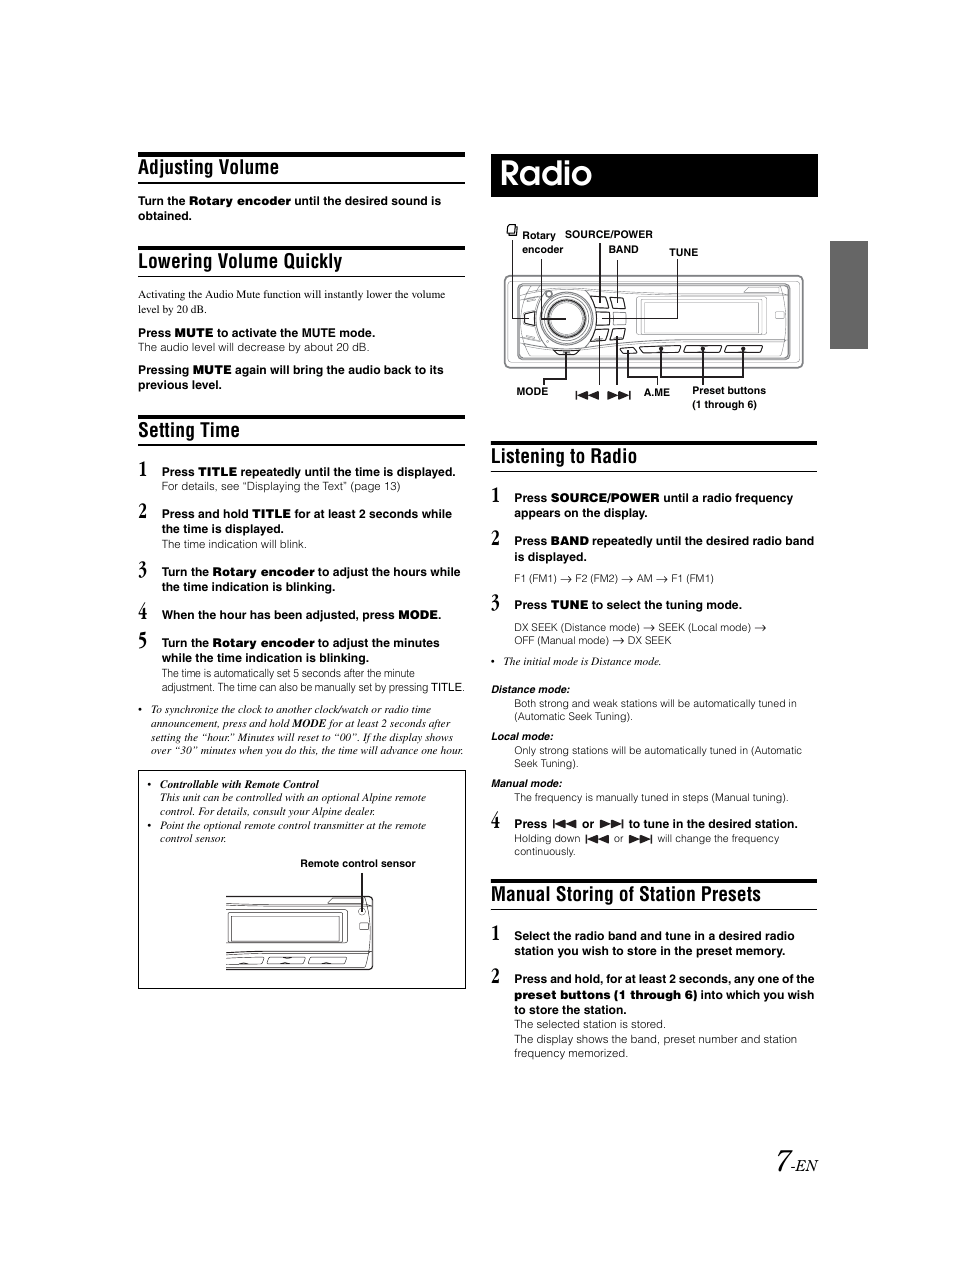 Alpine Cde 9852 Wiring Diagram Auto Electrical. Wiring Diagram For Alpine Cde 143bt 35. Wiring. Alpine Cde 143bt Wiring Diagram Xj At Scoala.co